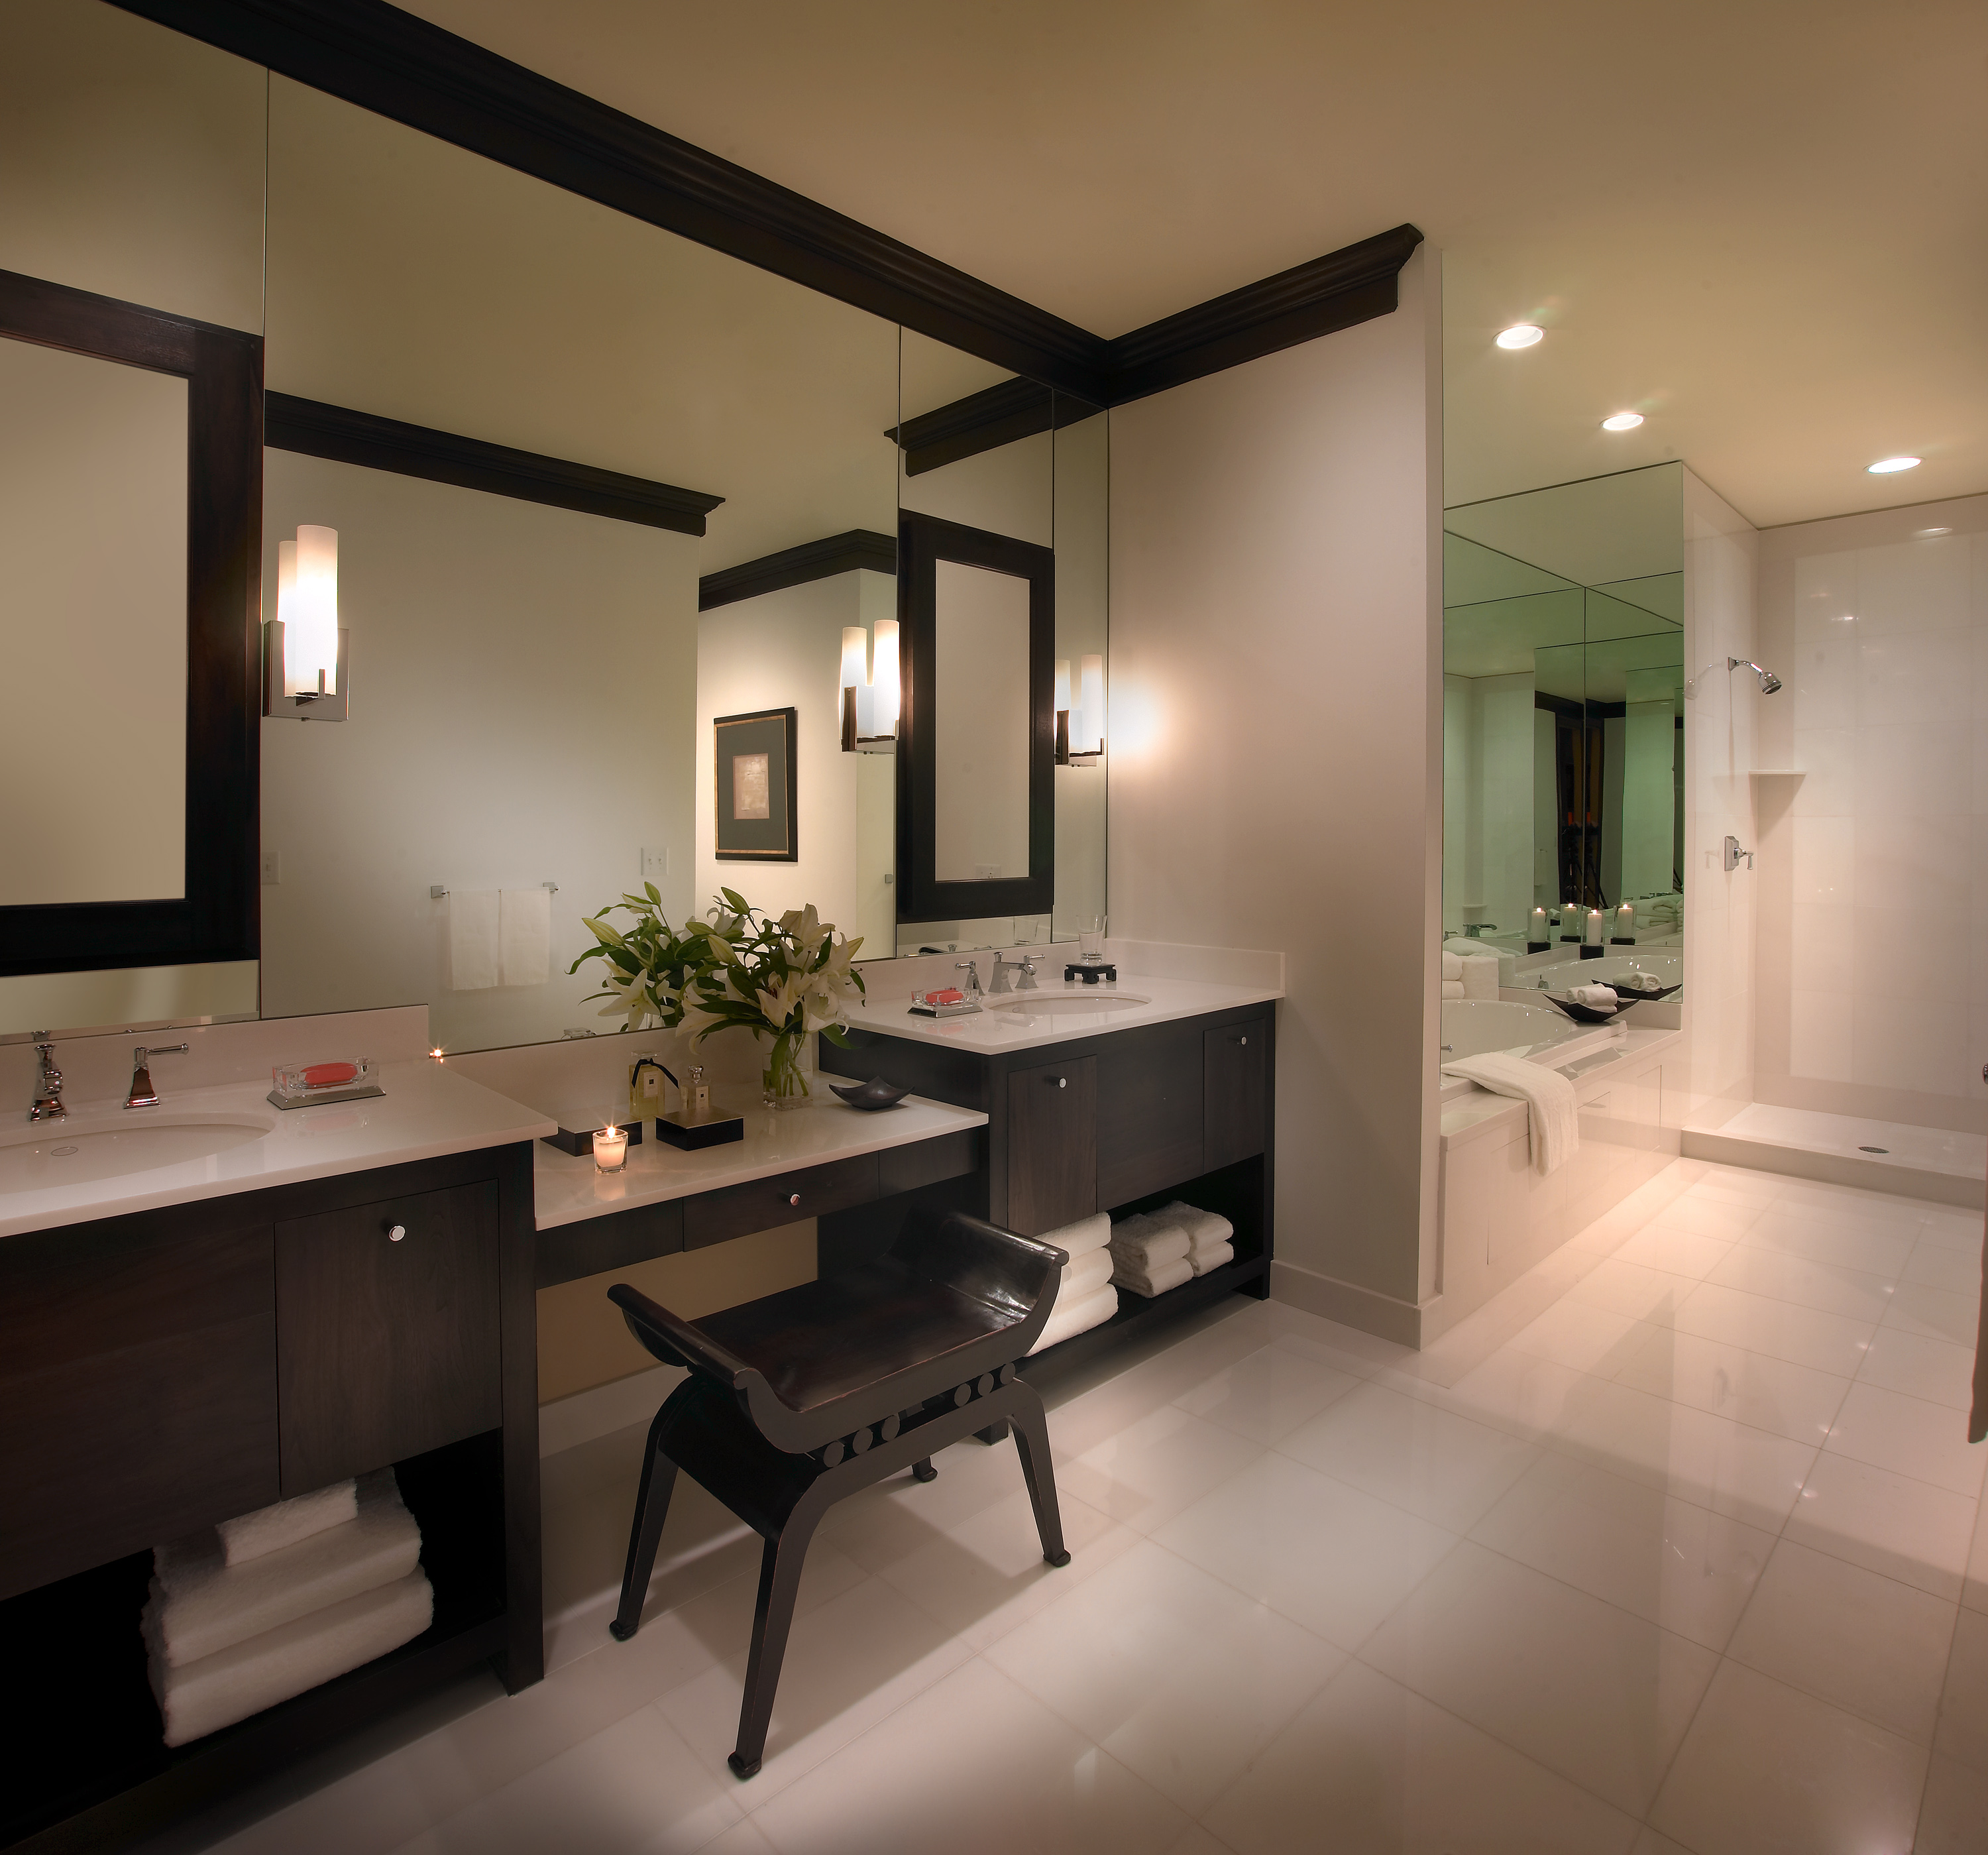 Updating Your Bathroom Made Easy: A Few Vital Items Can Make a World of A Difference. #homedecor